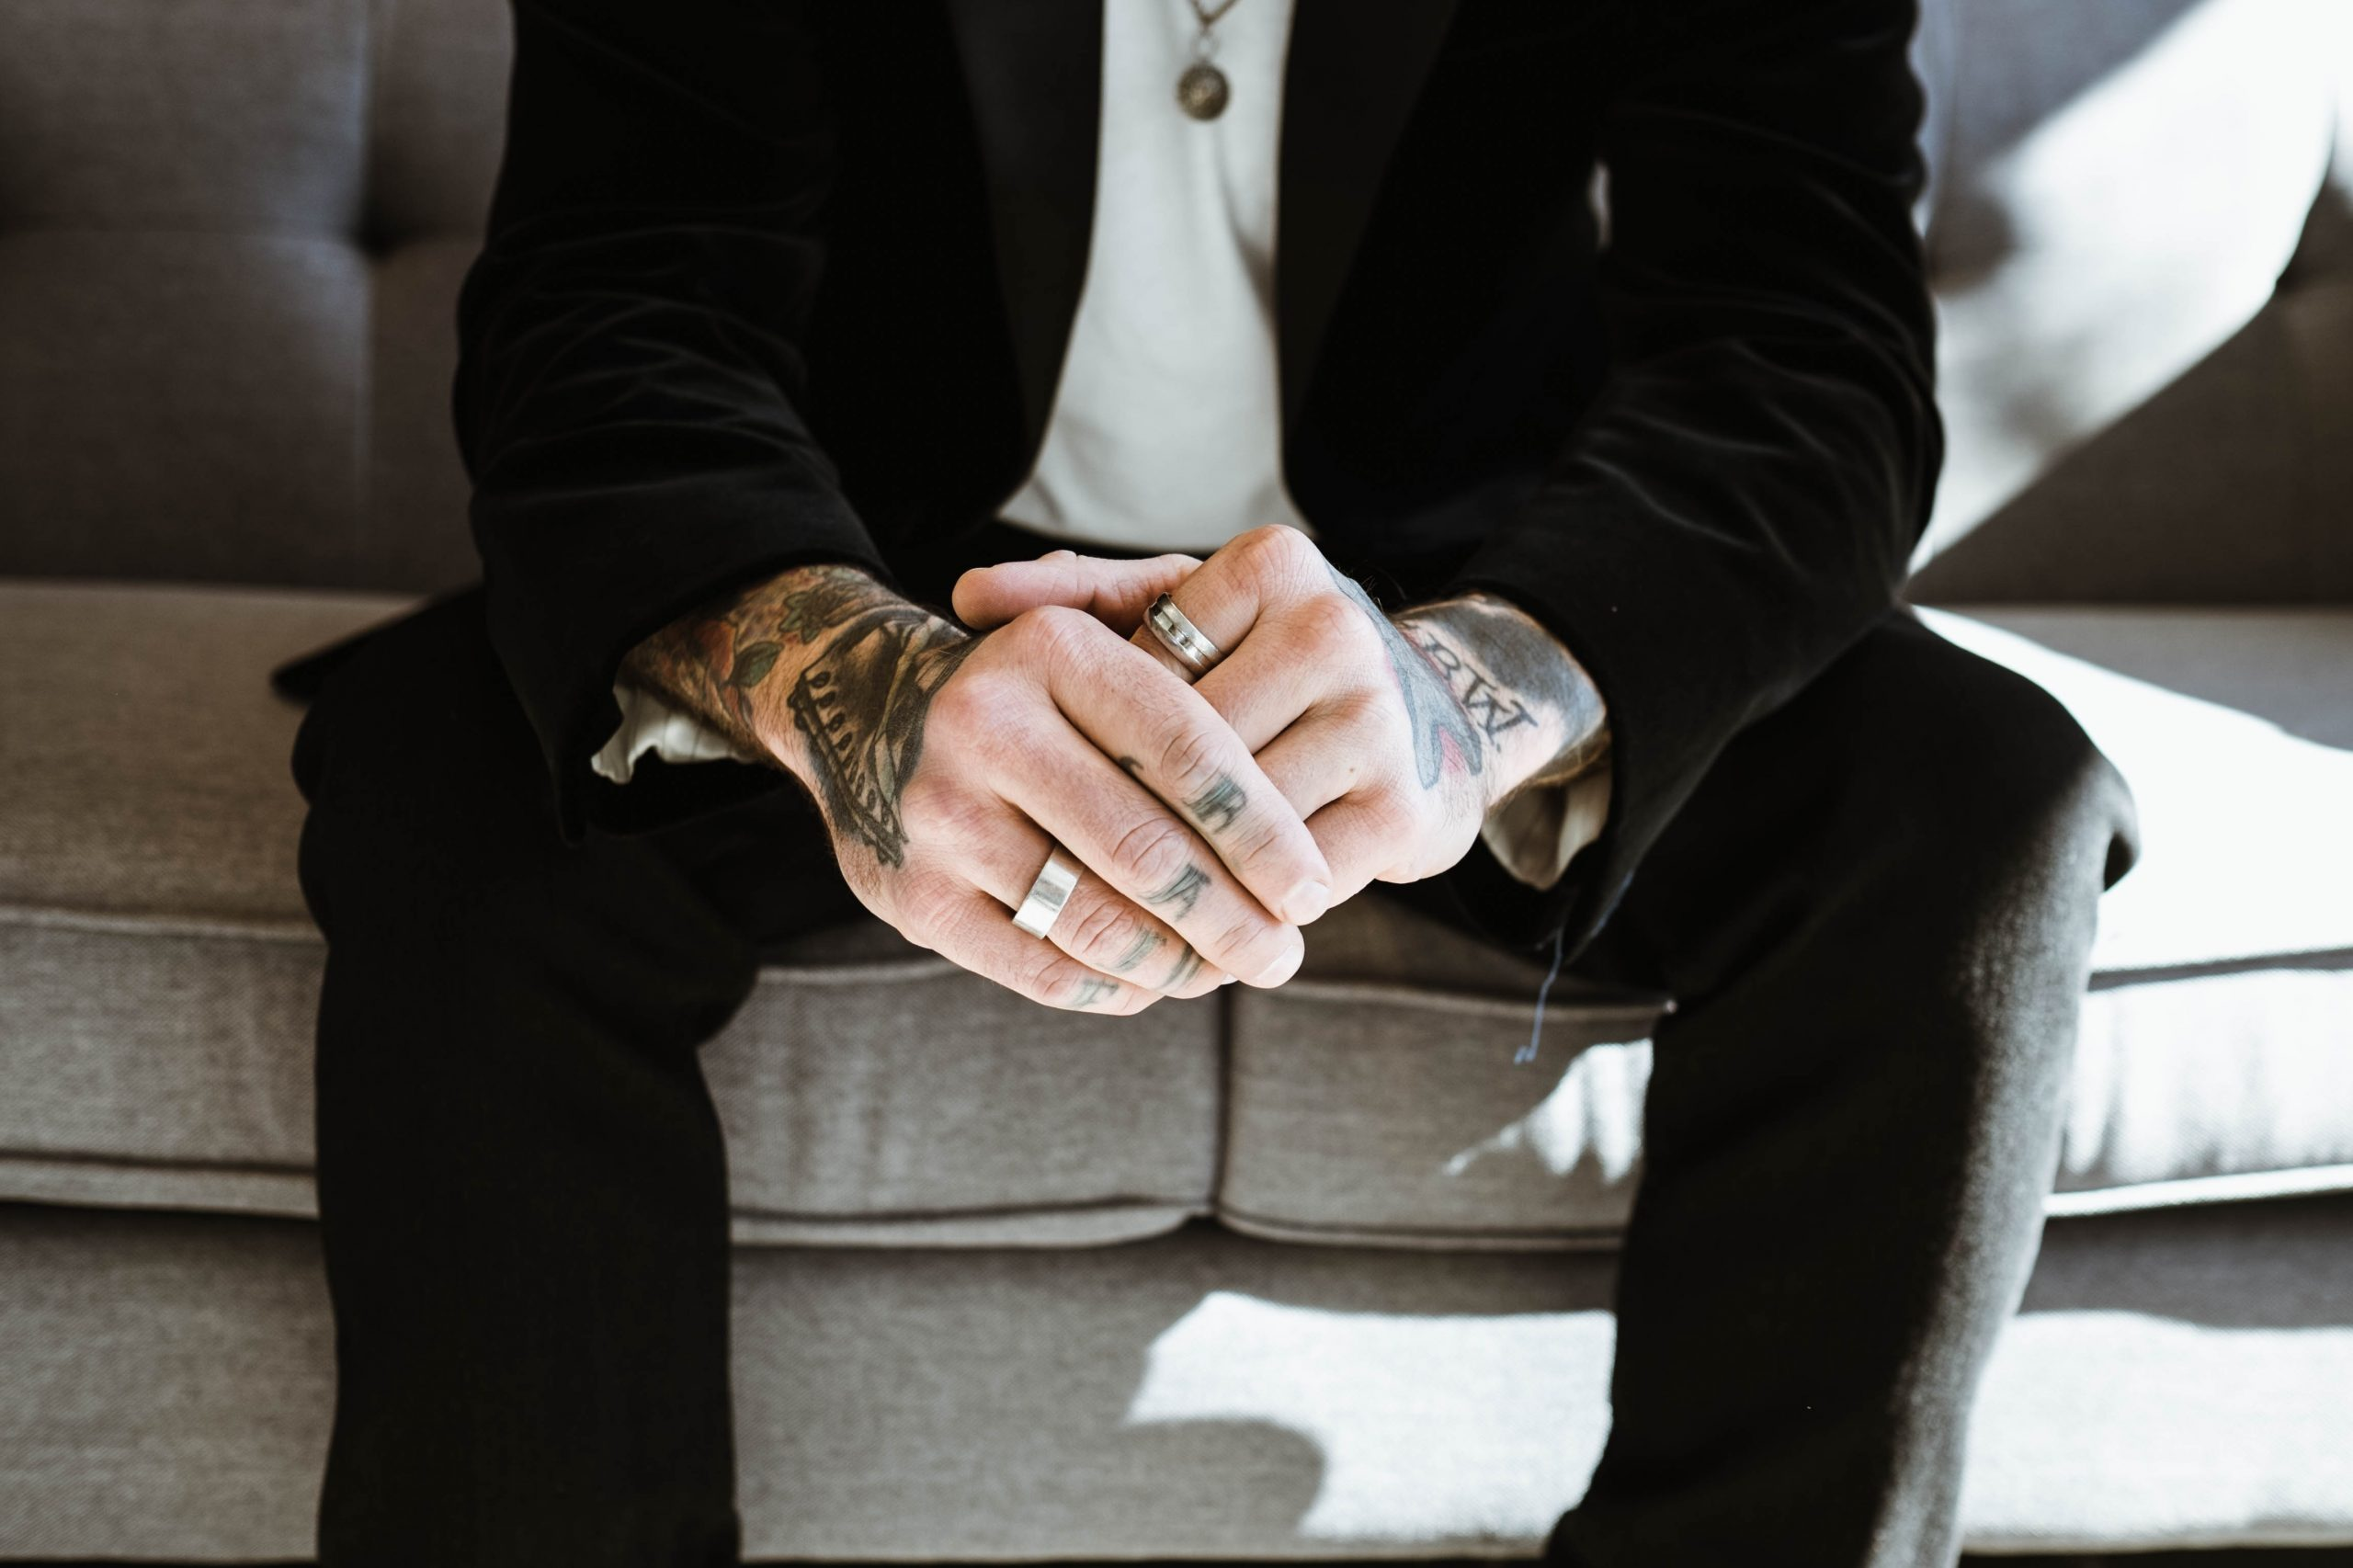 professional man with knuckle tattoos and sleeves